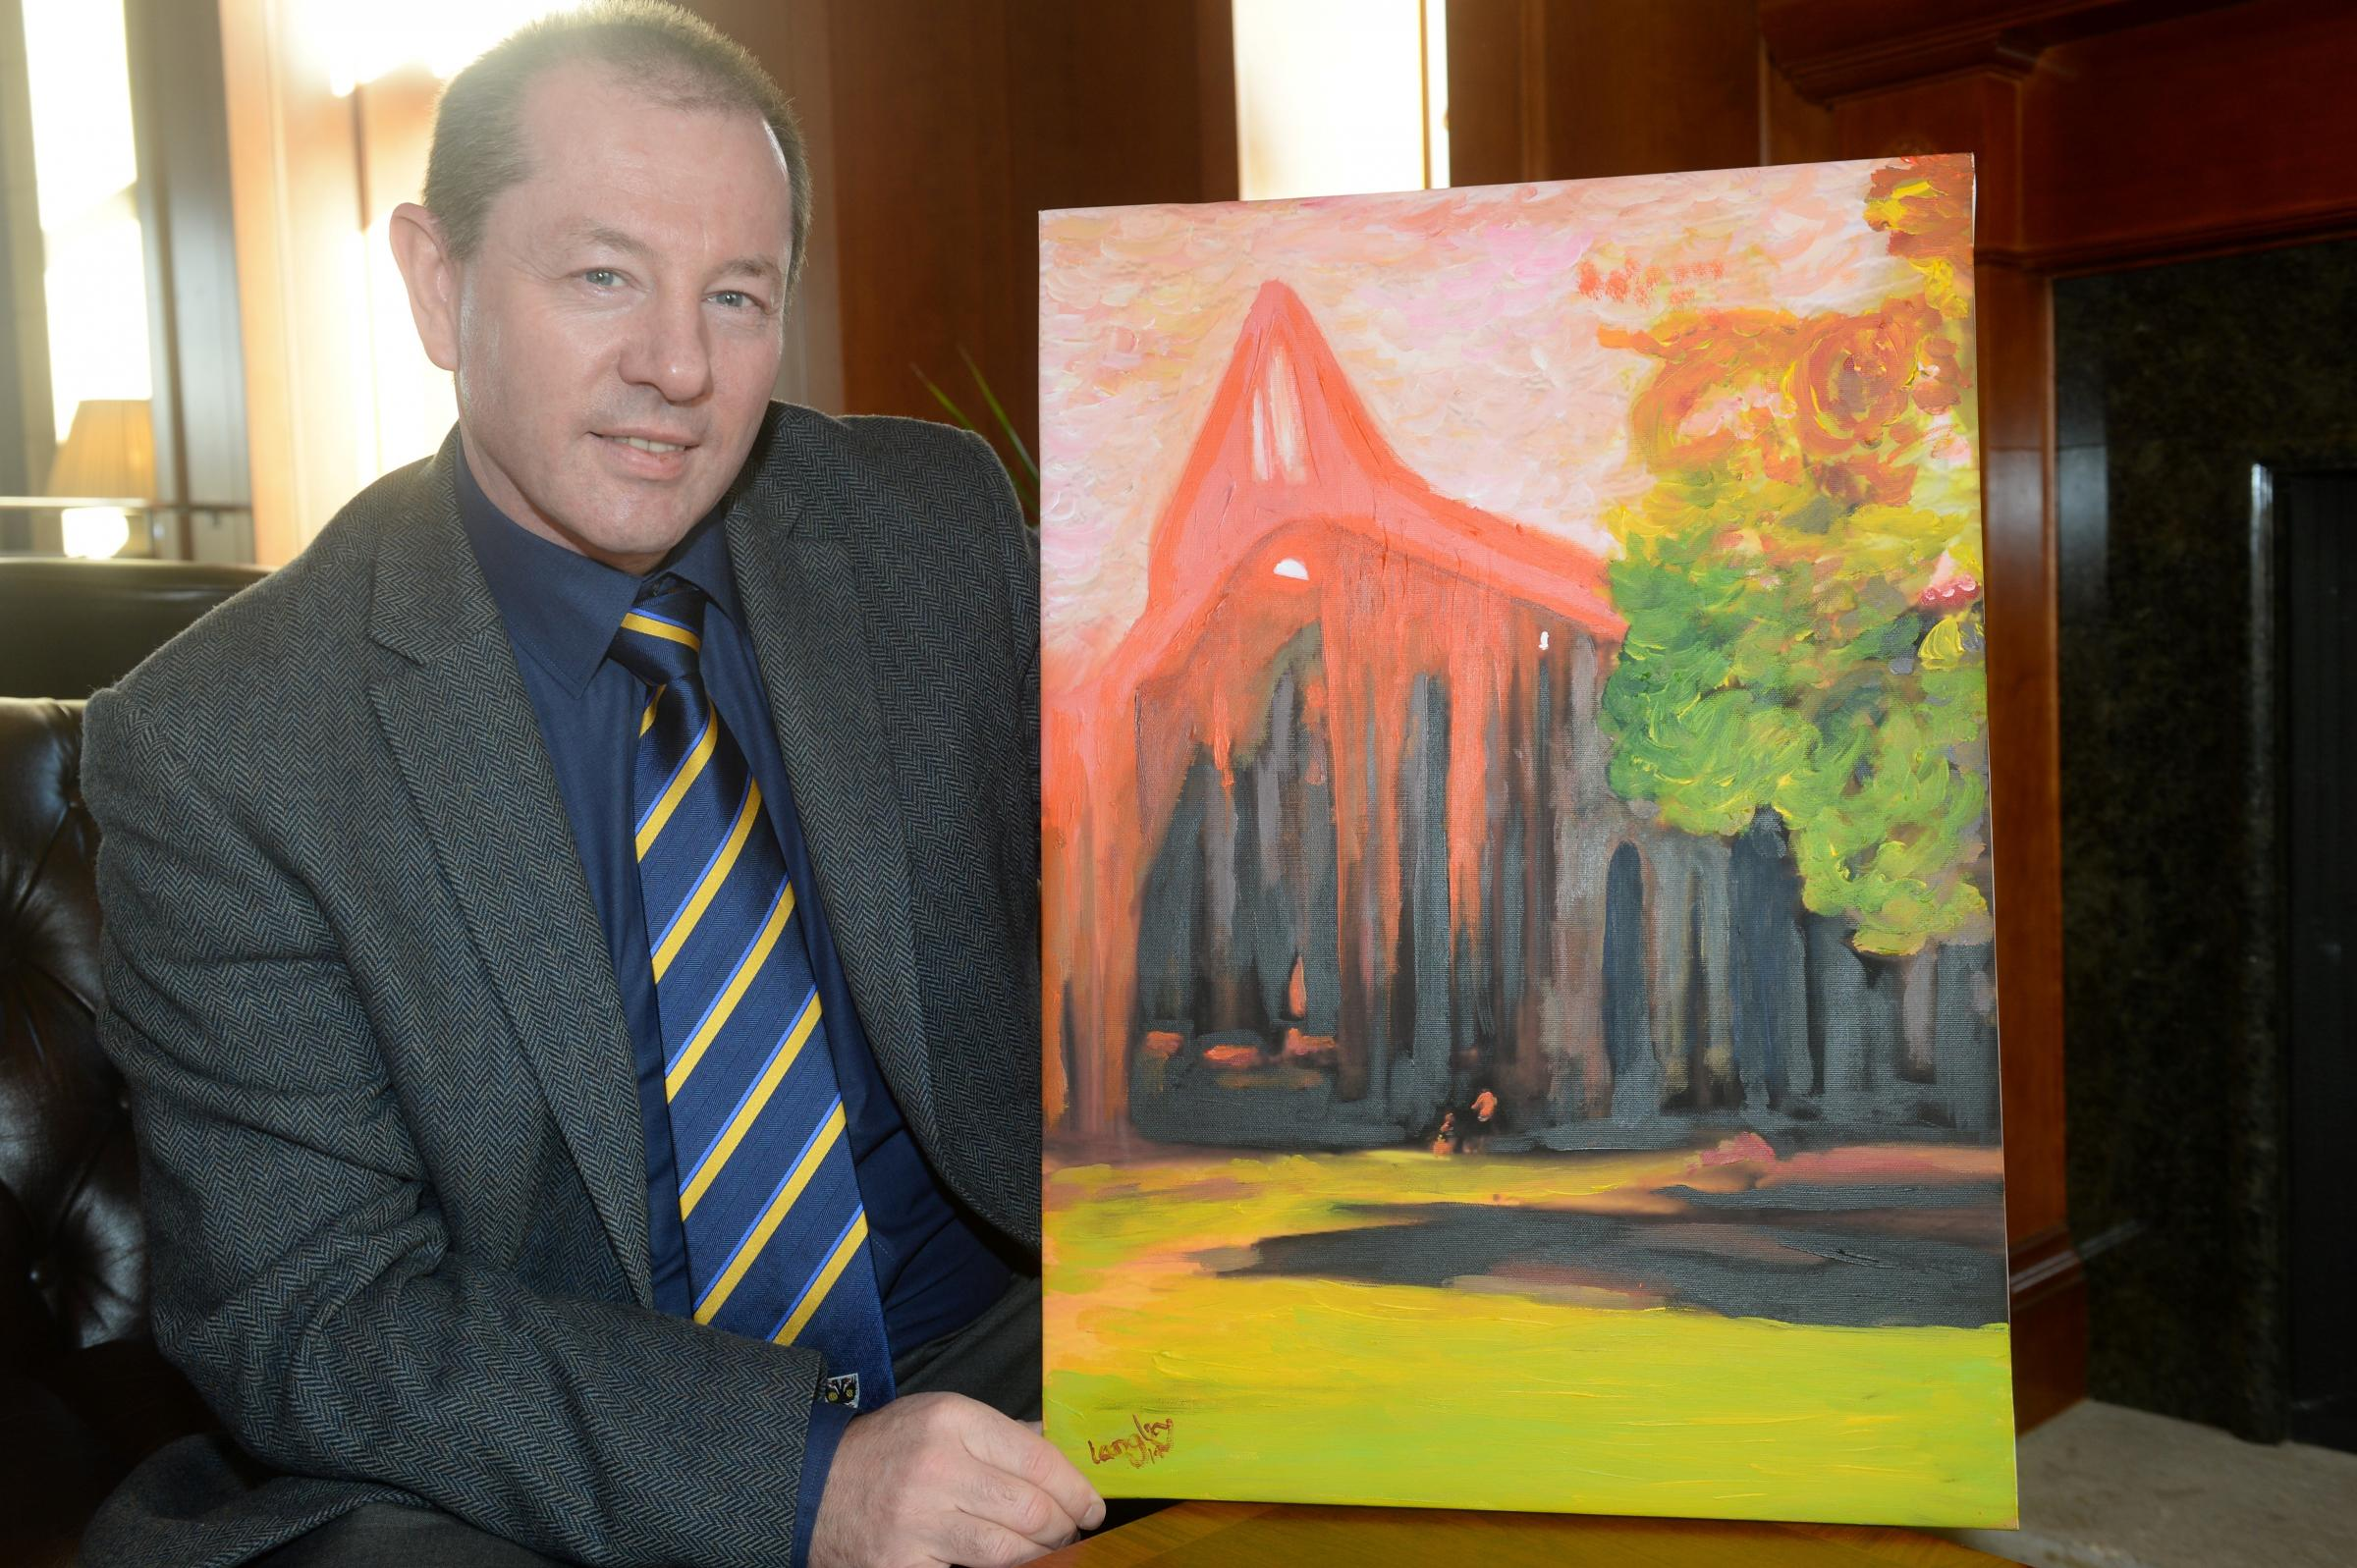 Artist taking Tintern Abbey picture to New York gallery